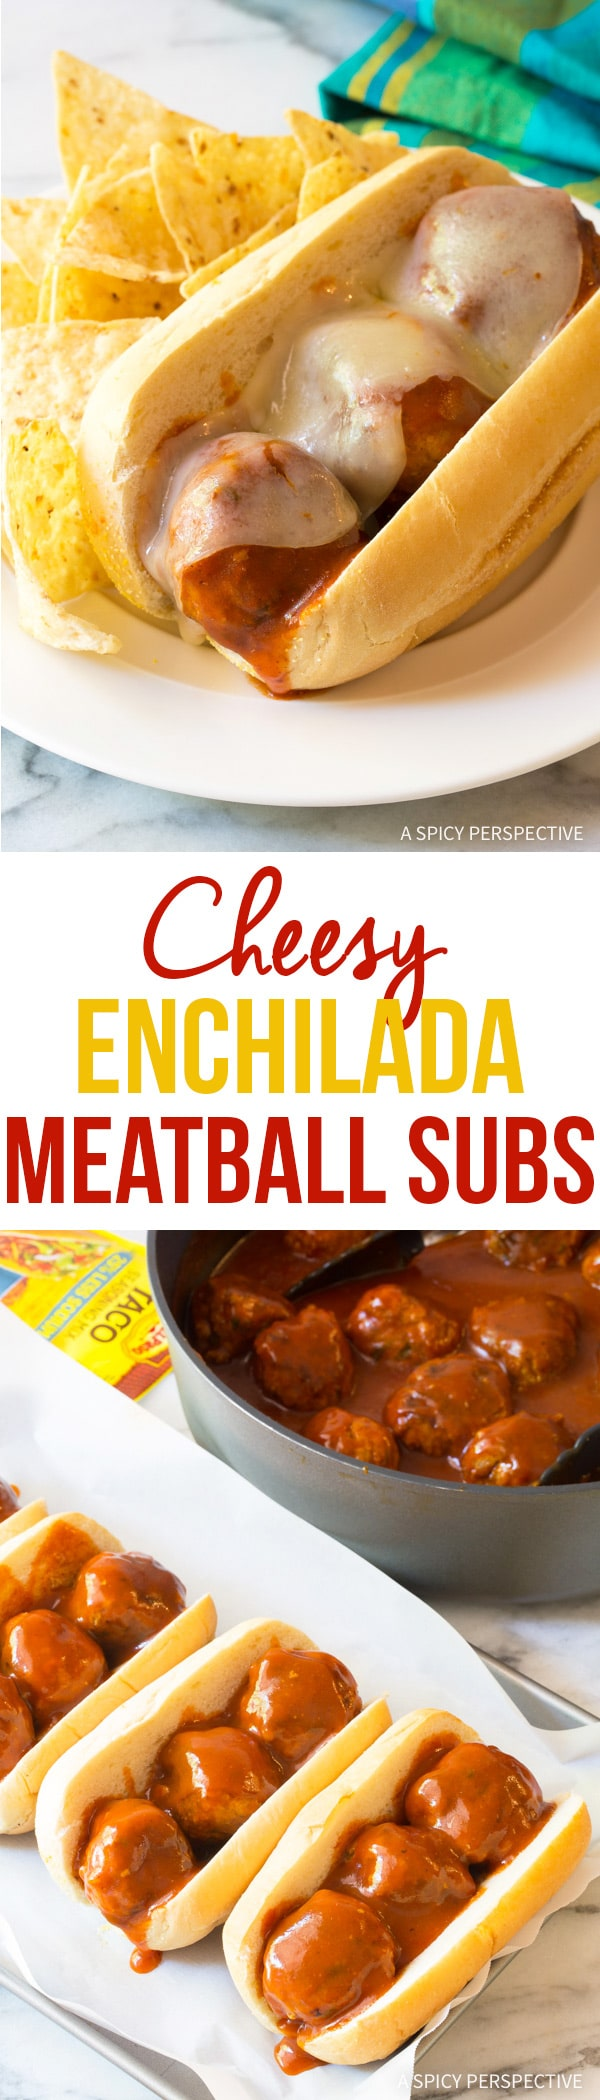 Awesome Cheesy Enchilada Meatball Sub Recipe #sandwich #mexican